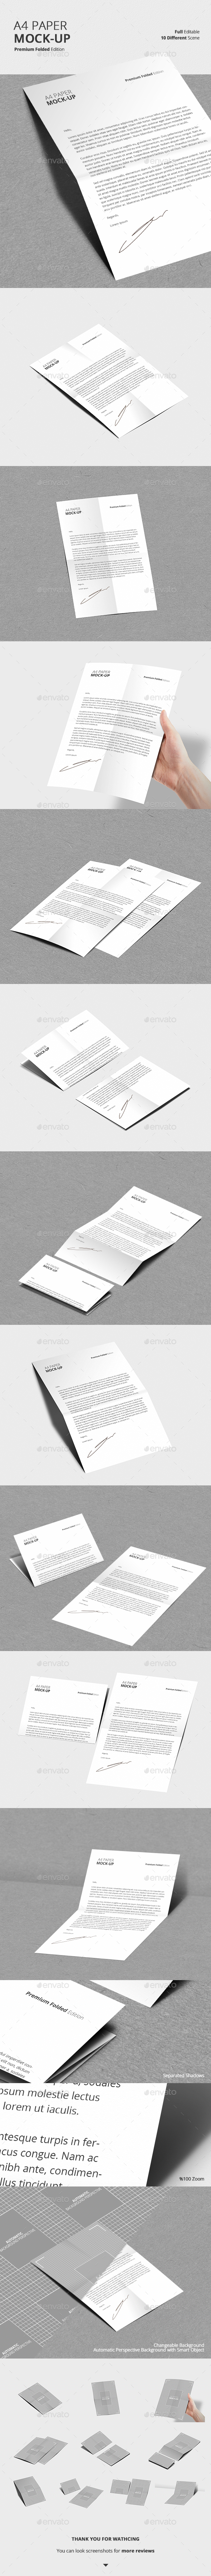 A4 Folded Paper Mock-Up - Product Mock-Ups Graphics